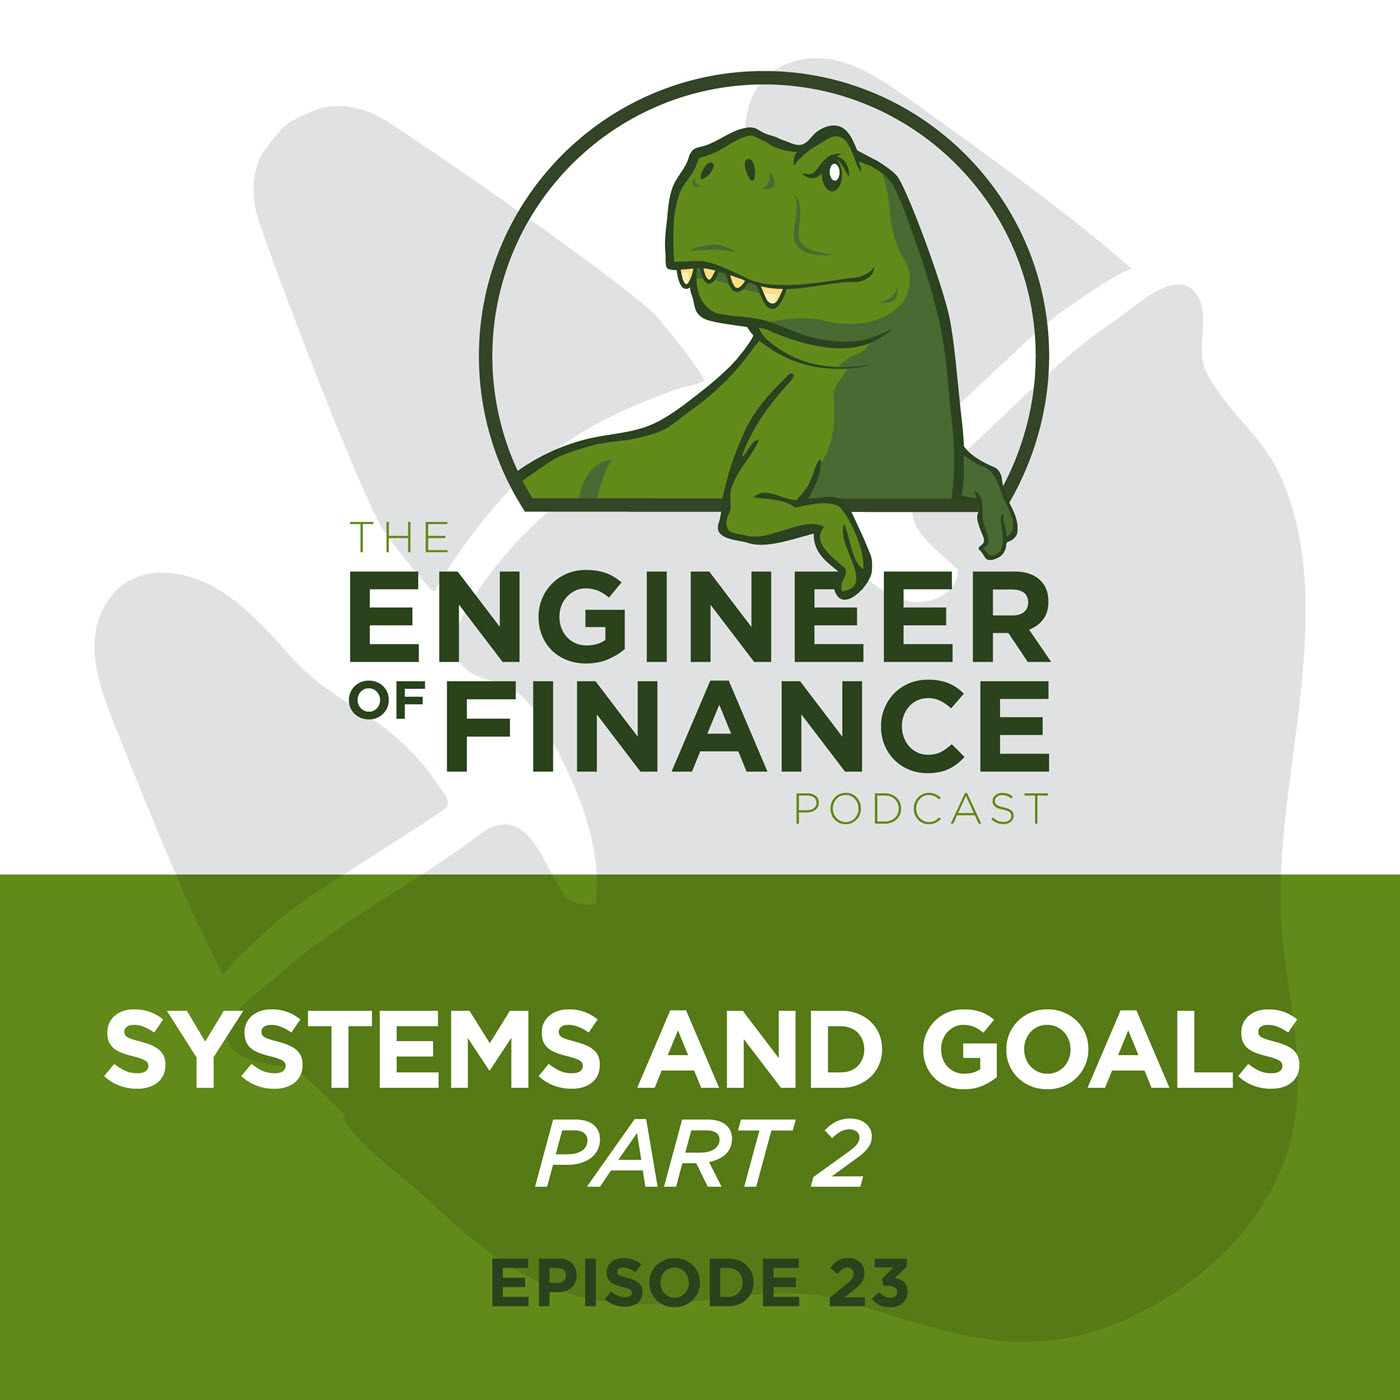 Systems And Goals Part 2 – Episode 23